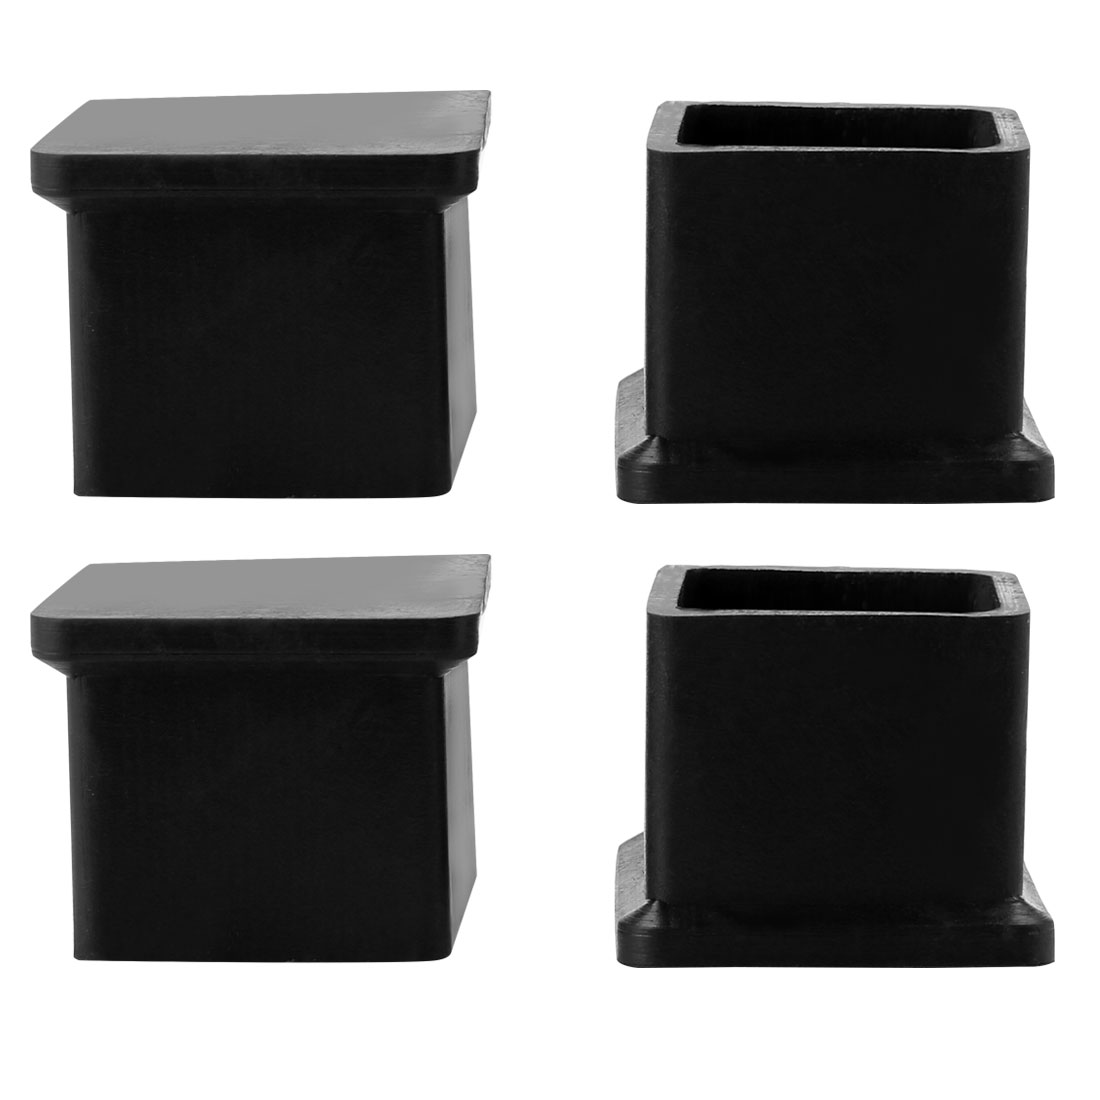 4 Pcs Square Black Rubber Foot Covers 19mm x 19mm for Home Chair